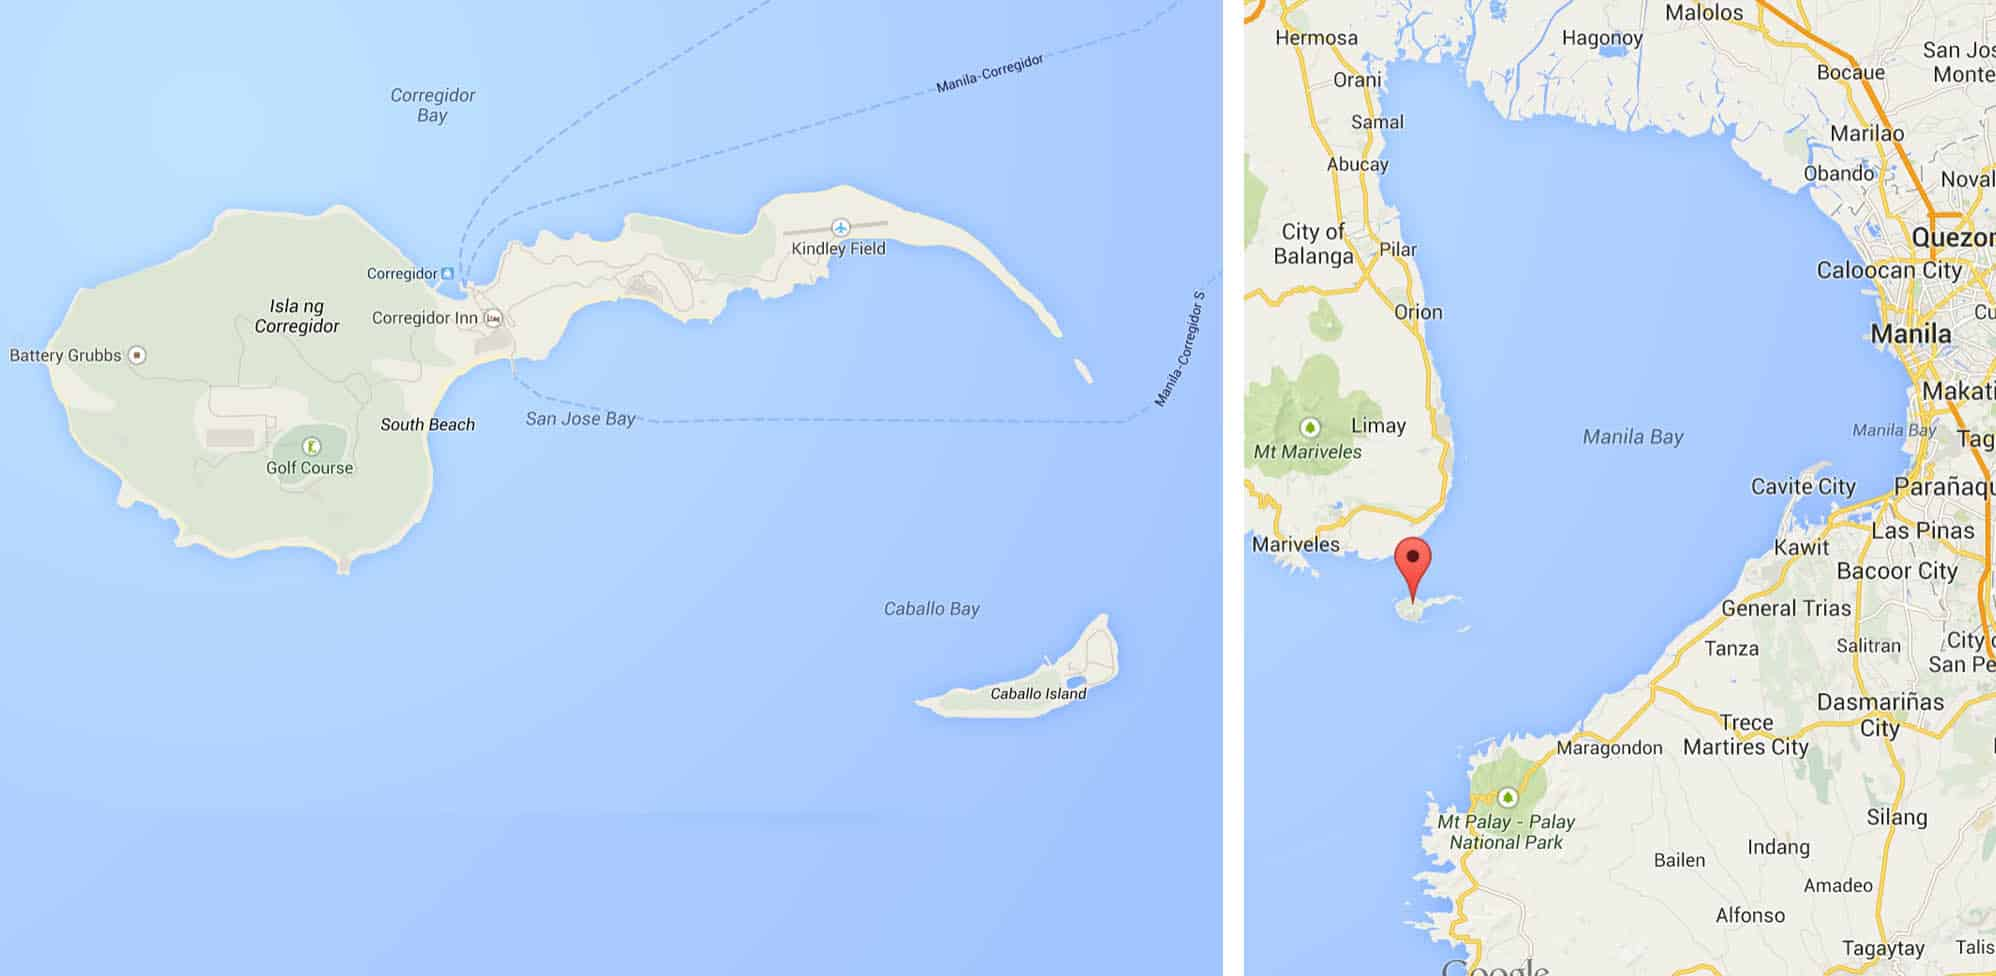 Corregidor Island and its position in Manila Bay. Alright, I'll say it. It looks like a sperm cell.